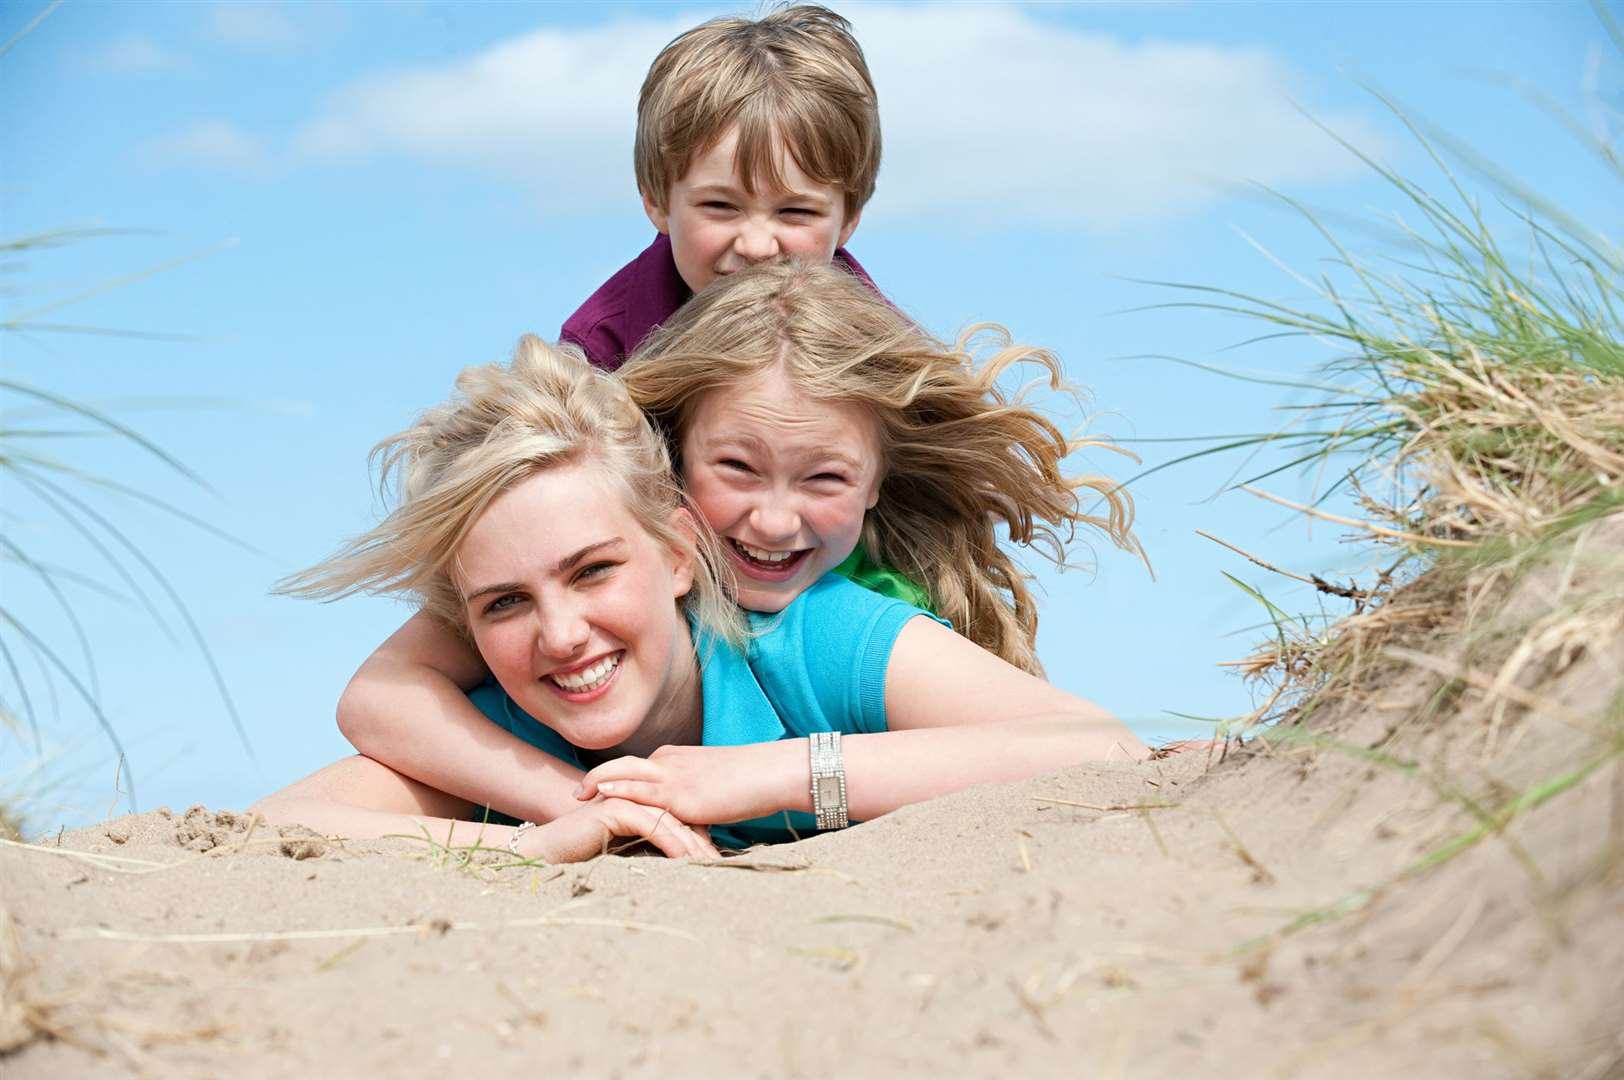 Families will have more options for outings and holidays from May 17